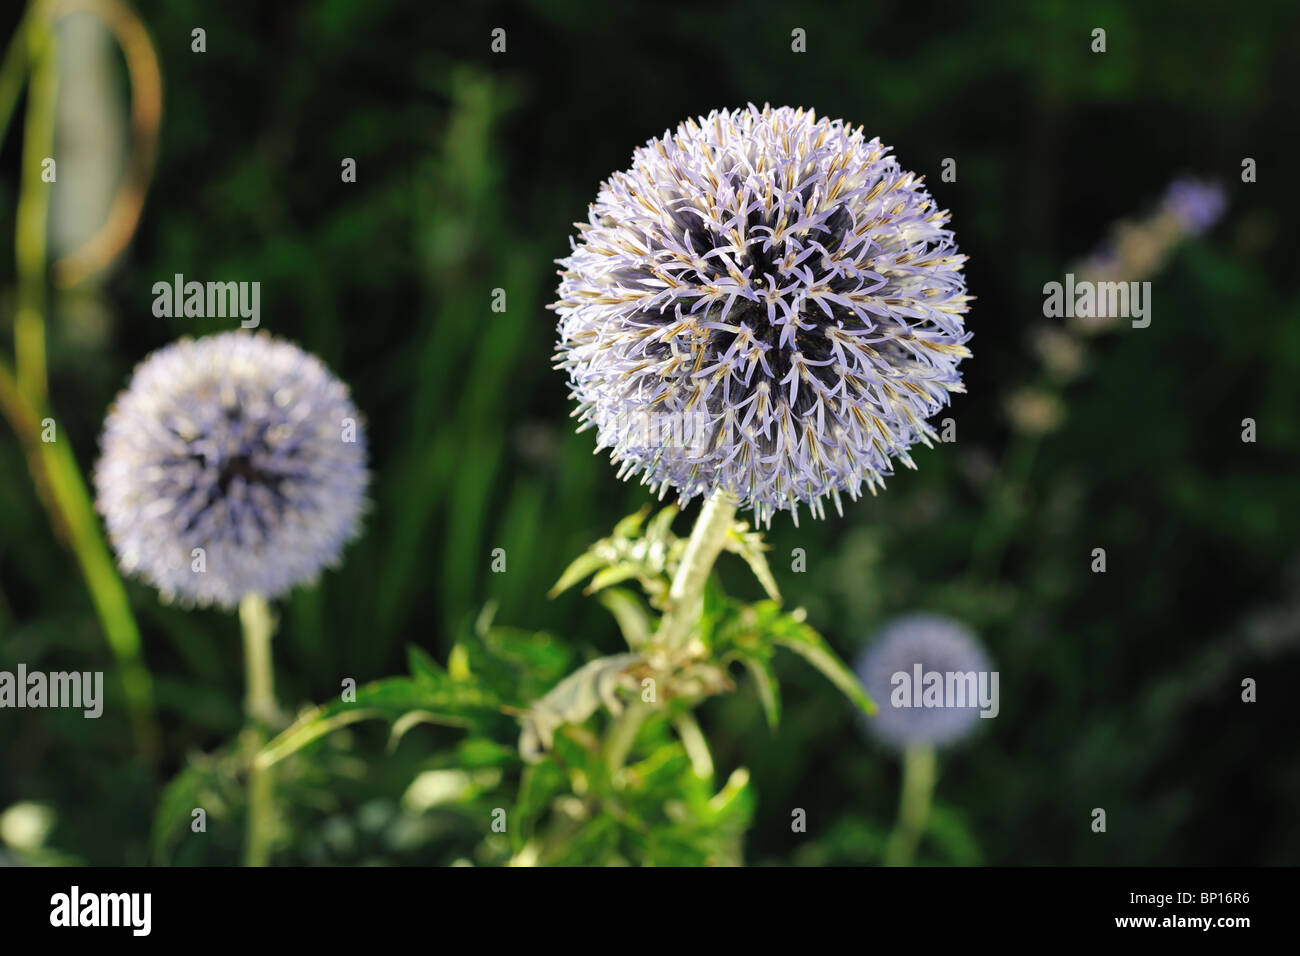 Close-up of a Great Globe Thistle (Echinops sphaerocephalus) a flower with bristly petals in the late afternoon - Stock Image